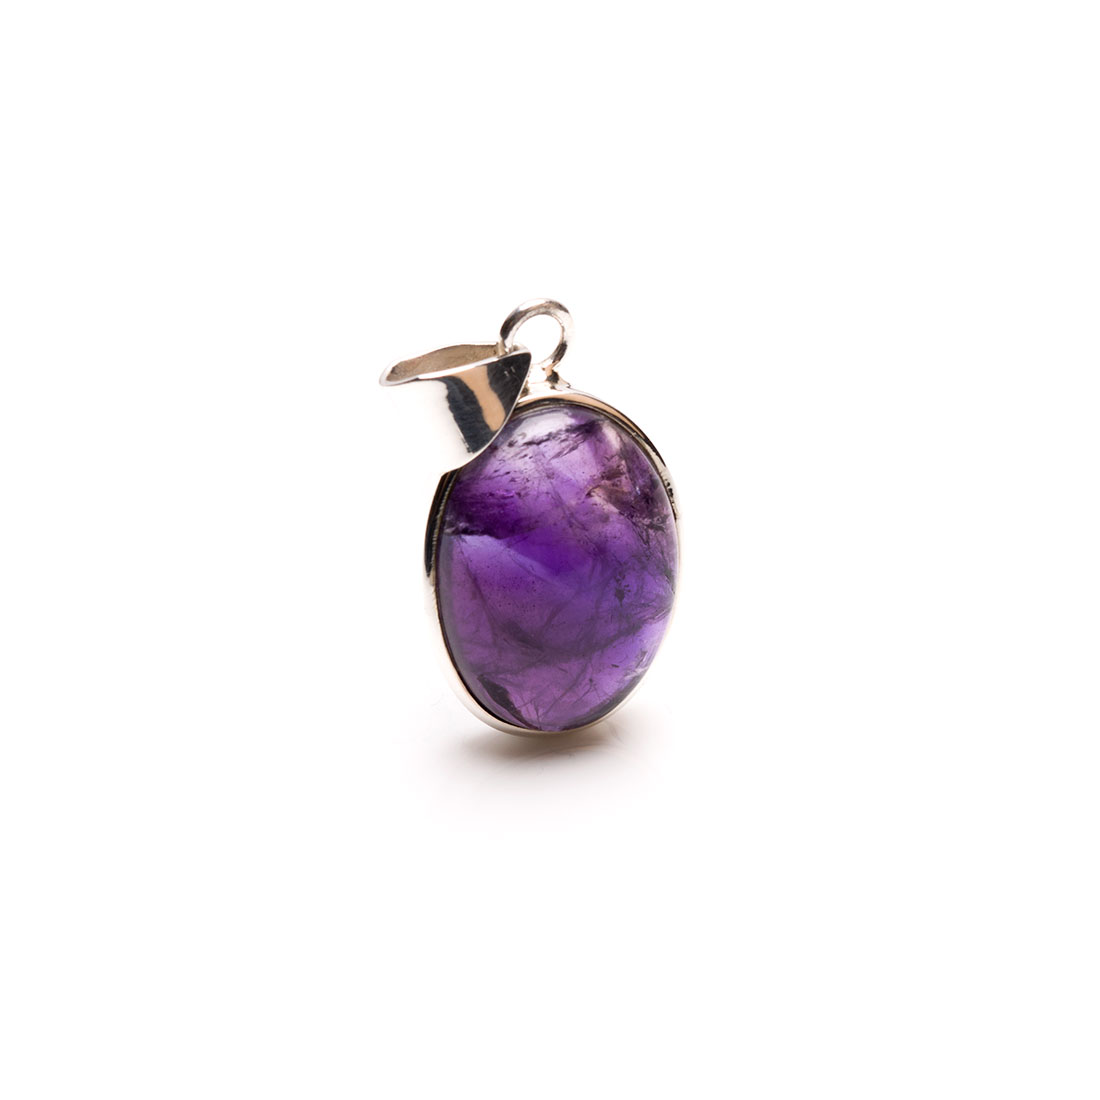 Small oval shaped amethyst cabochon gemstone crafted as a ladies pendant in sterling silver